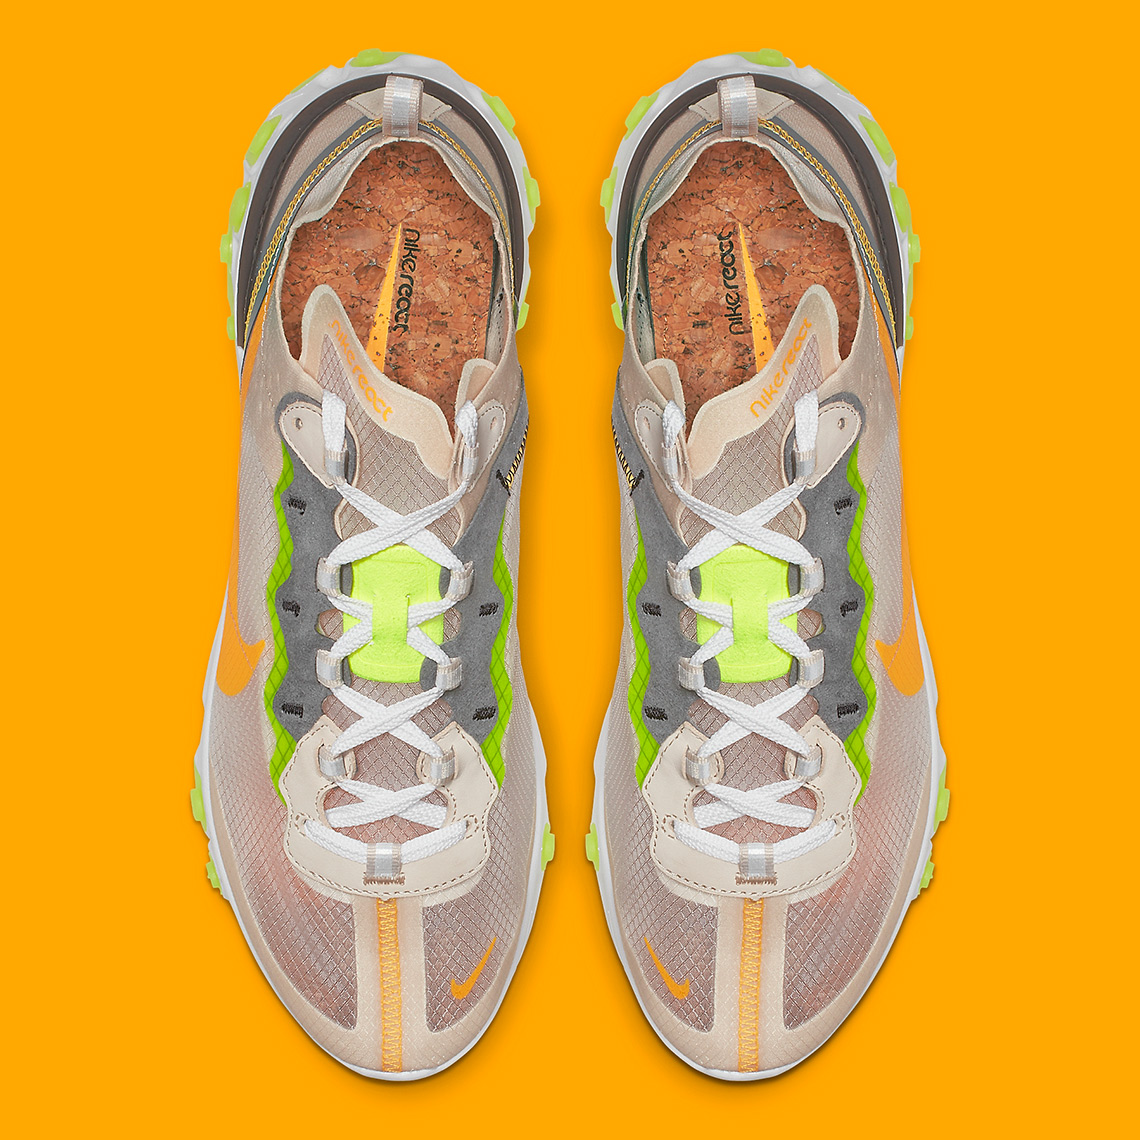 66d5ddefeed5 Nike React Element 87 AQ1090-101 Release Info